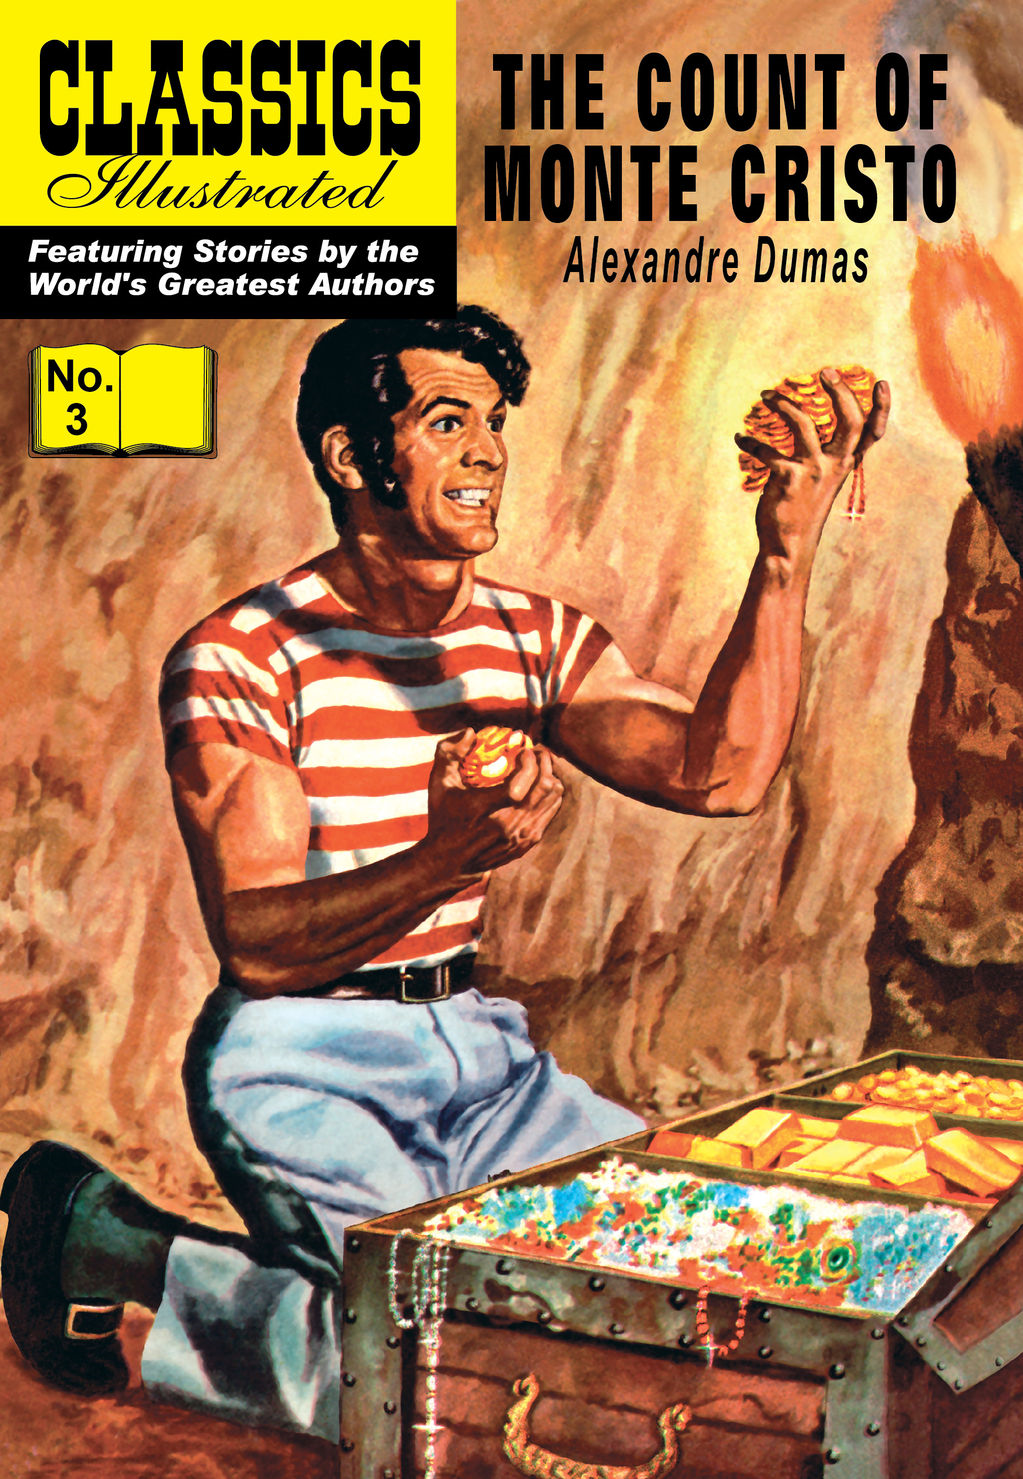 The Count of Monte Cristo - Classics Illustrated #3